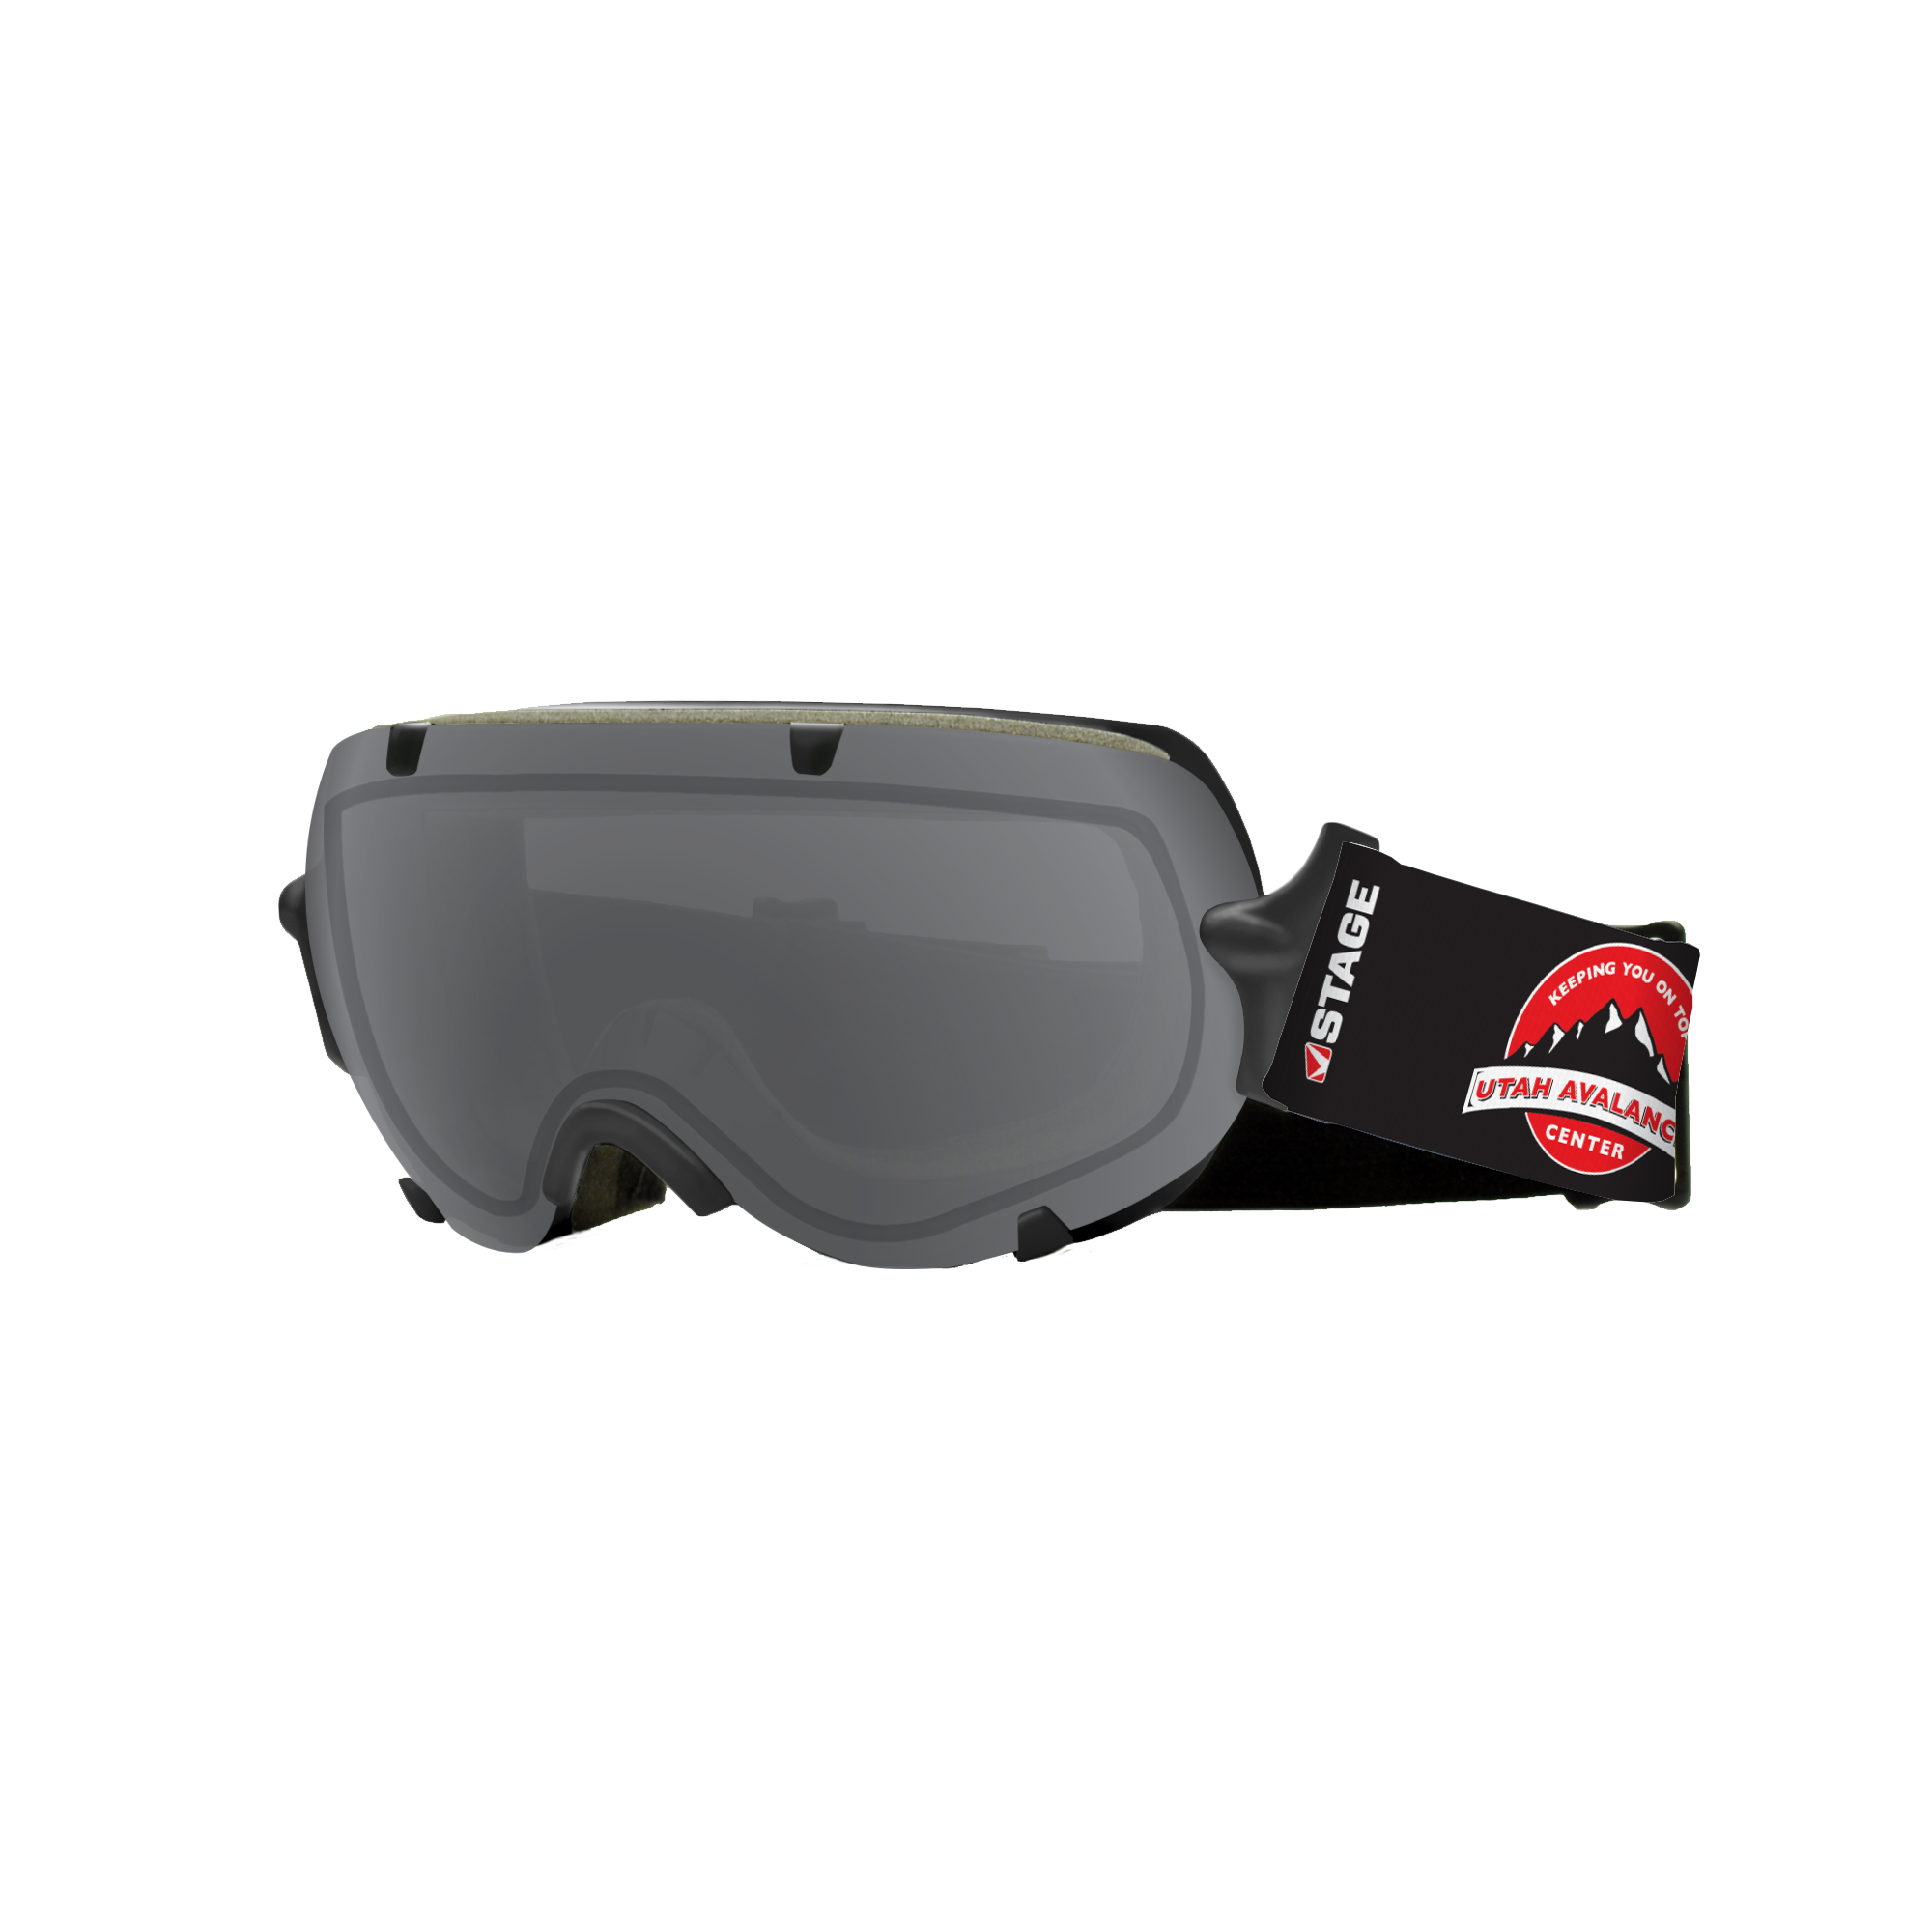 Utah Avalanche Center Good Guys Goggle